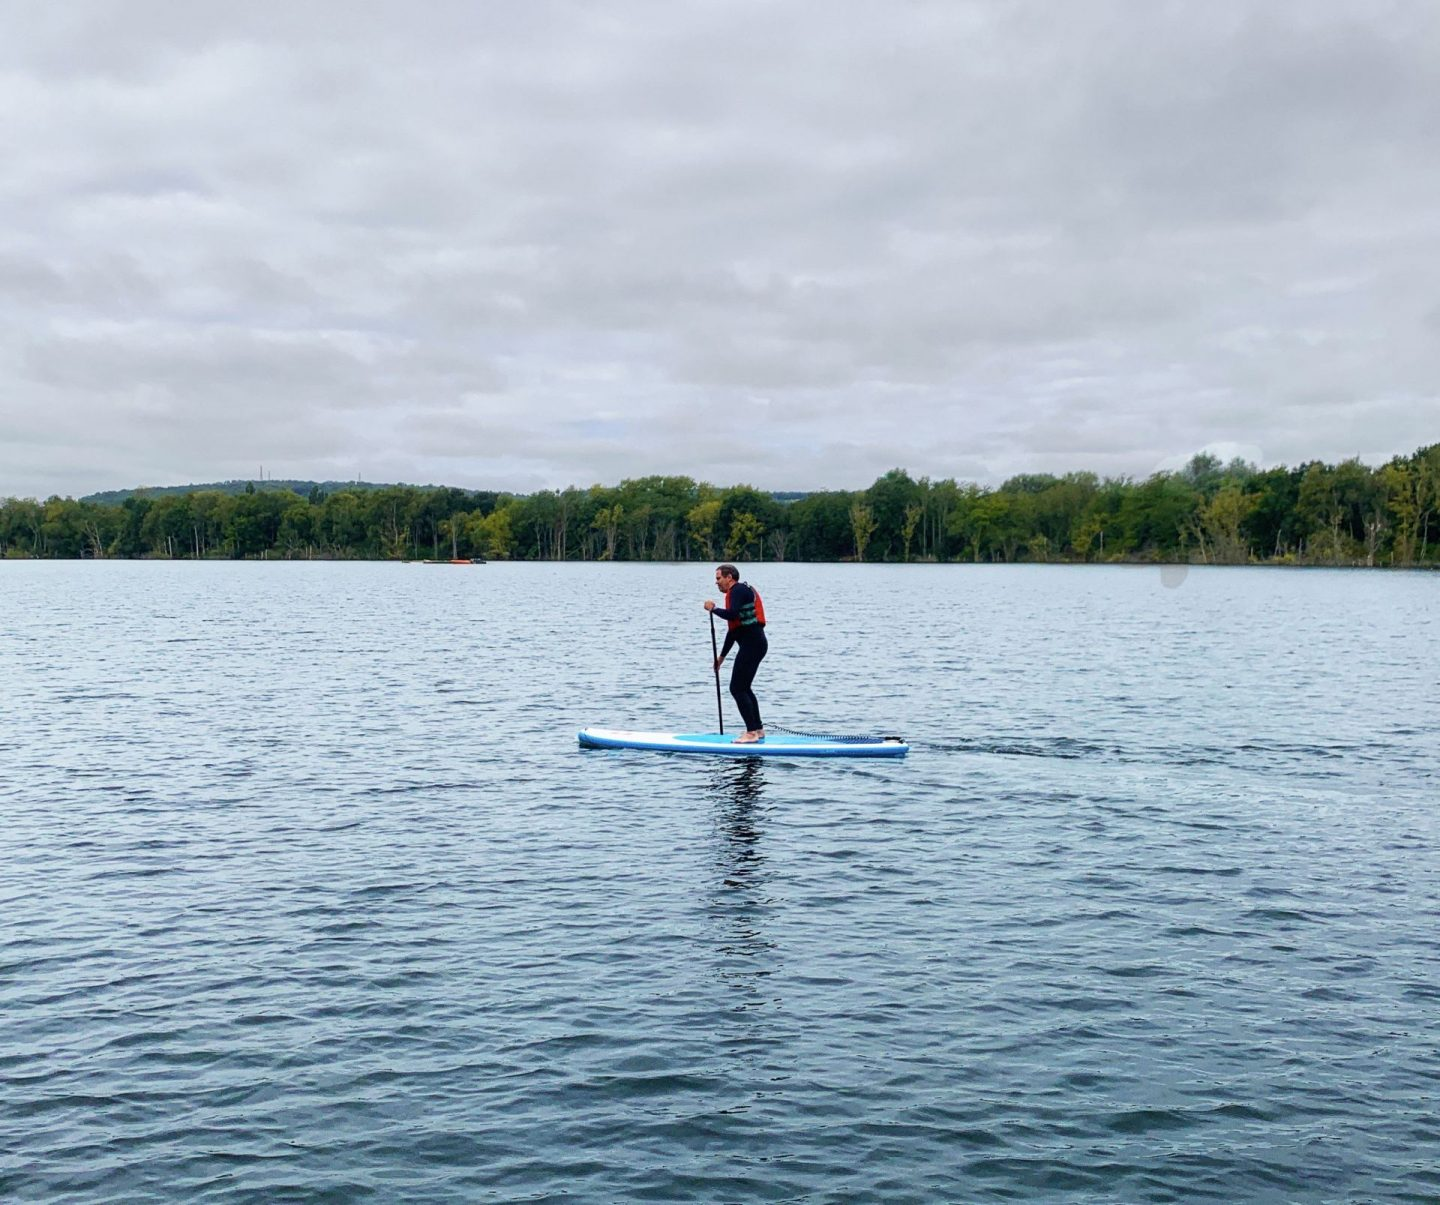 John Adams of Dadbloguk using a SUP  or stand up paddleboard